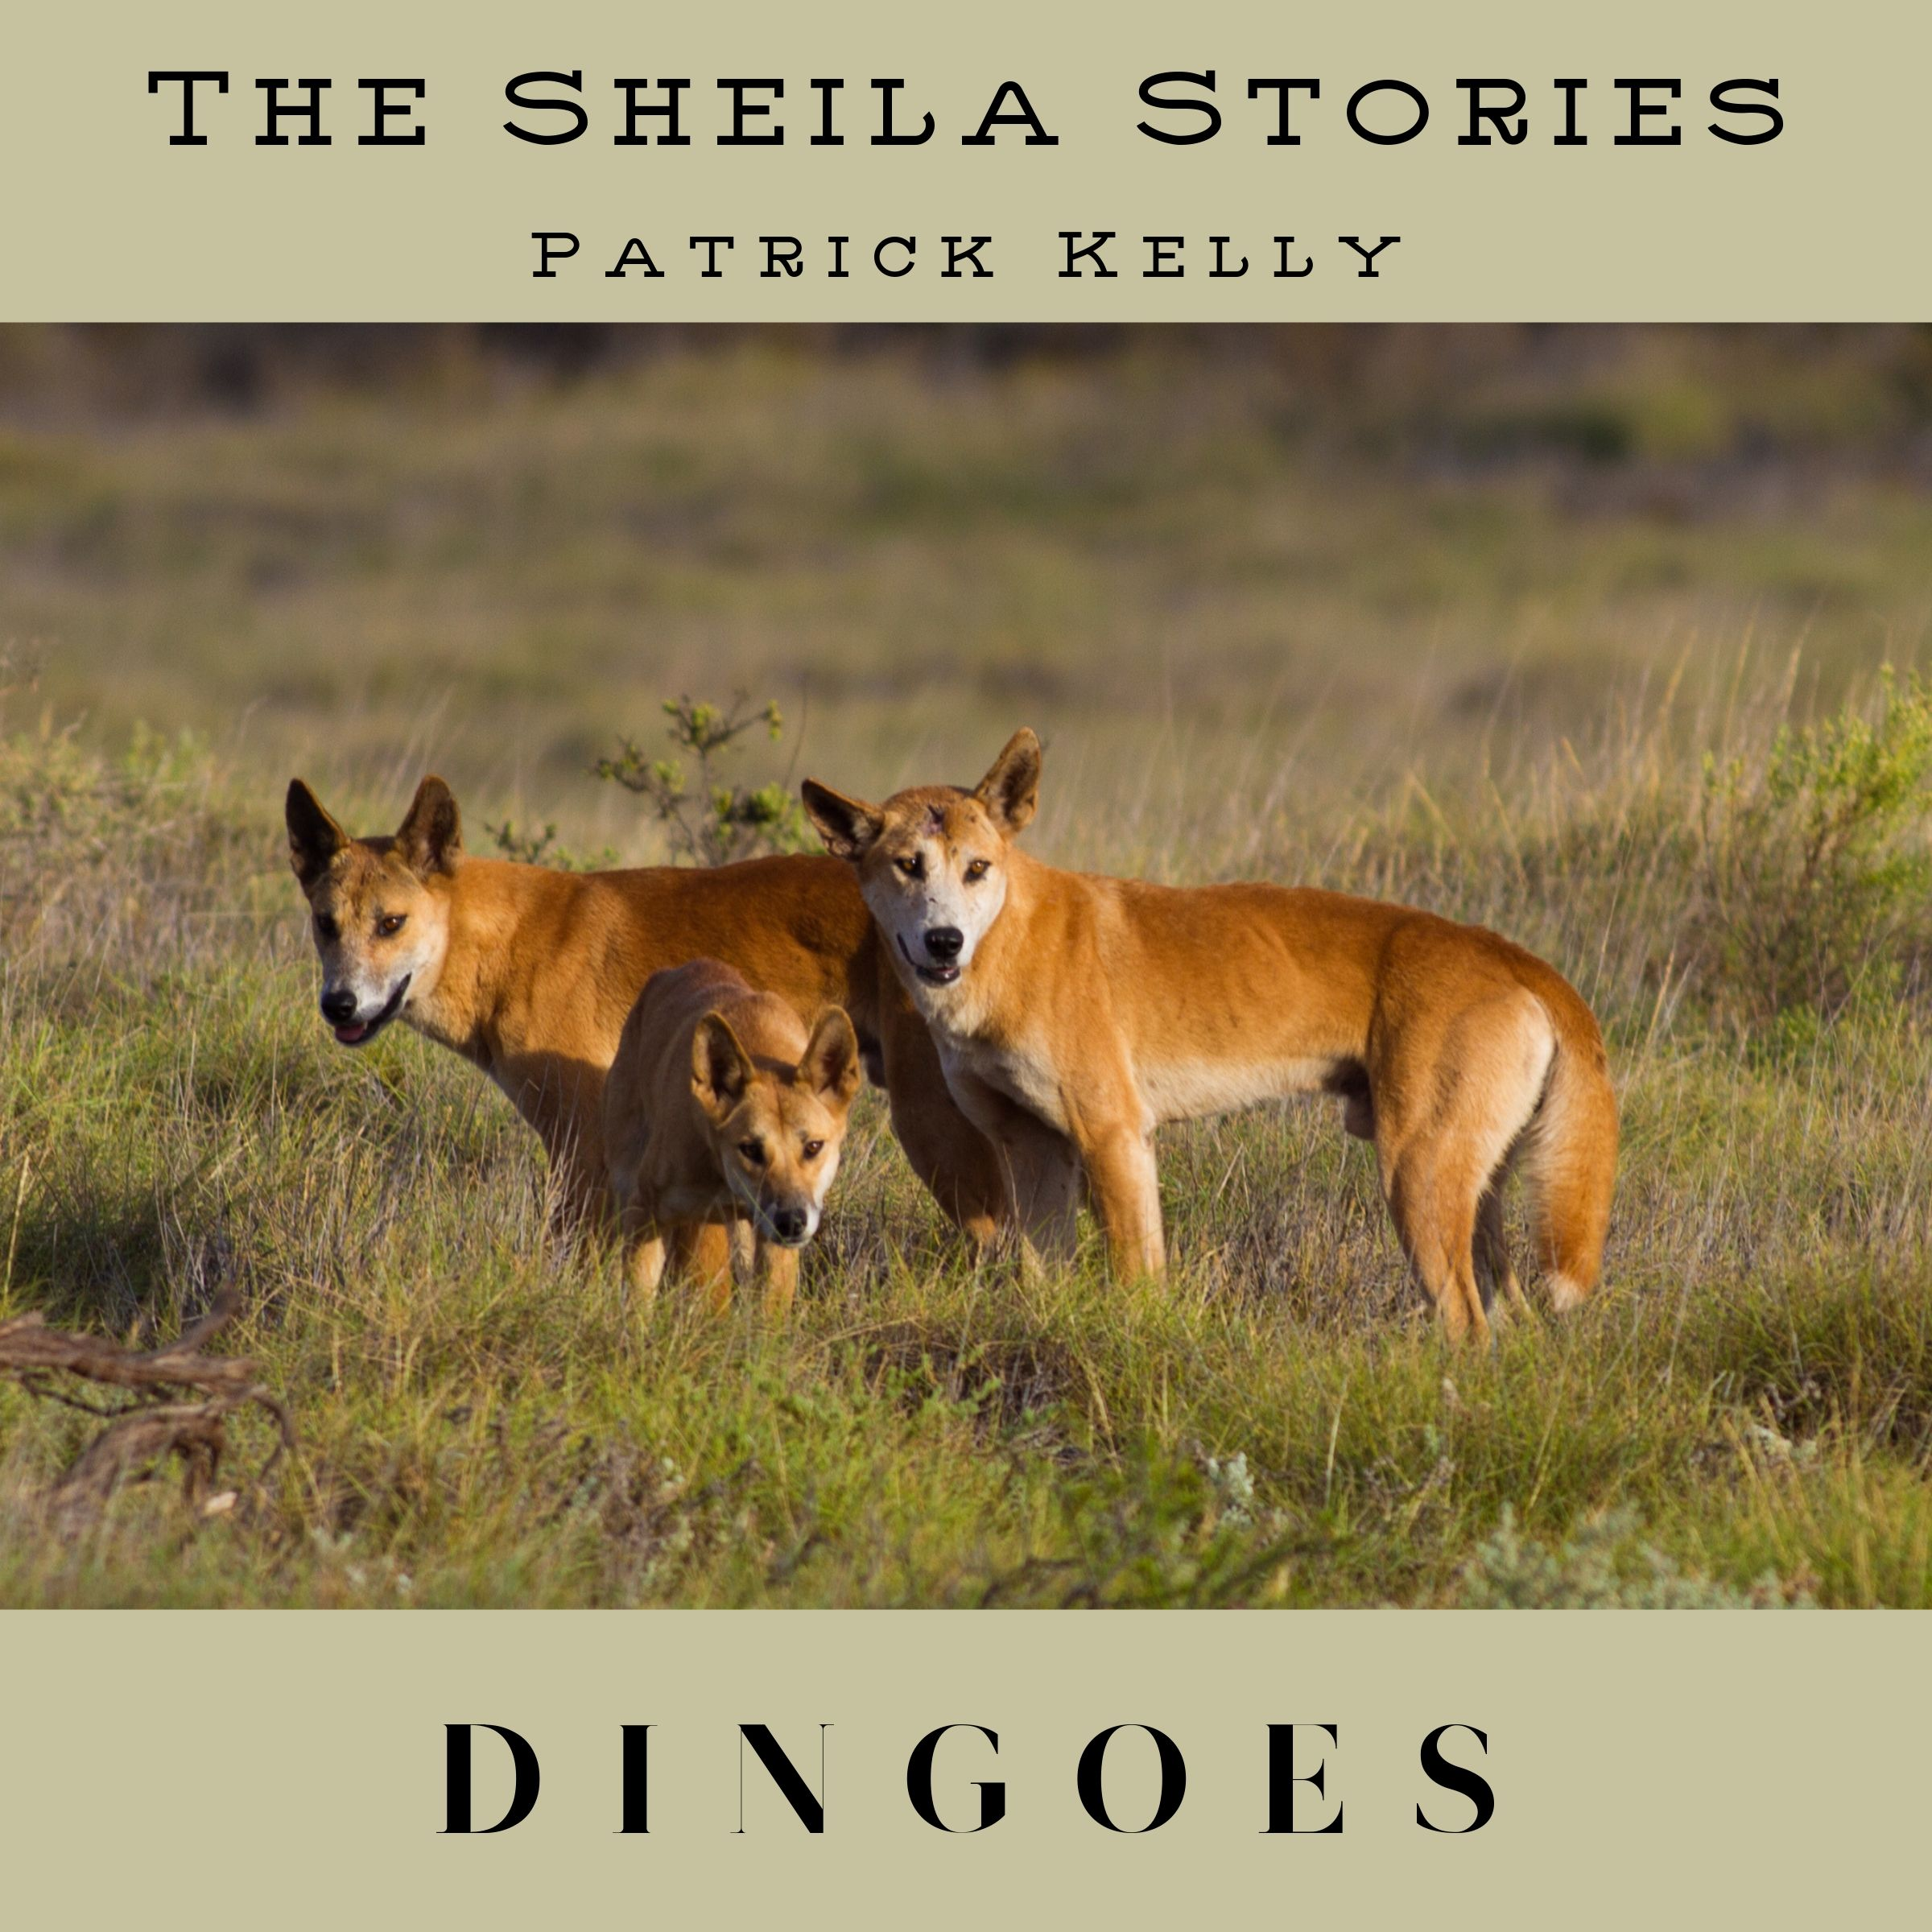 SS Cover EP05 Dingoes Small.jpg